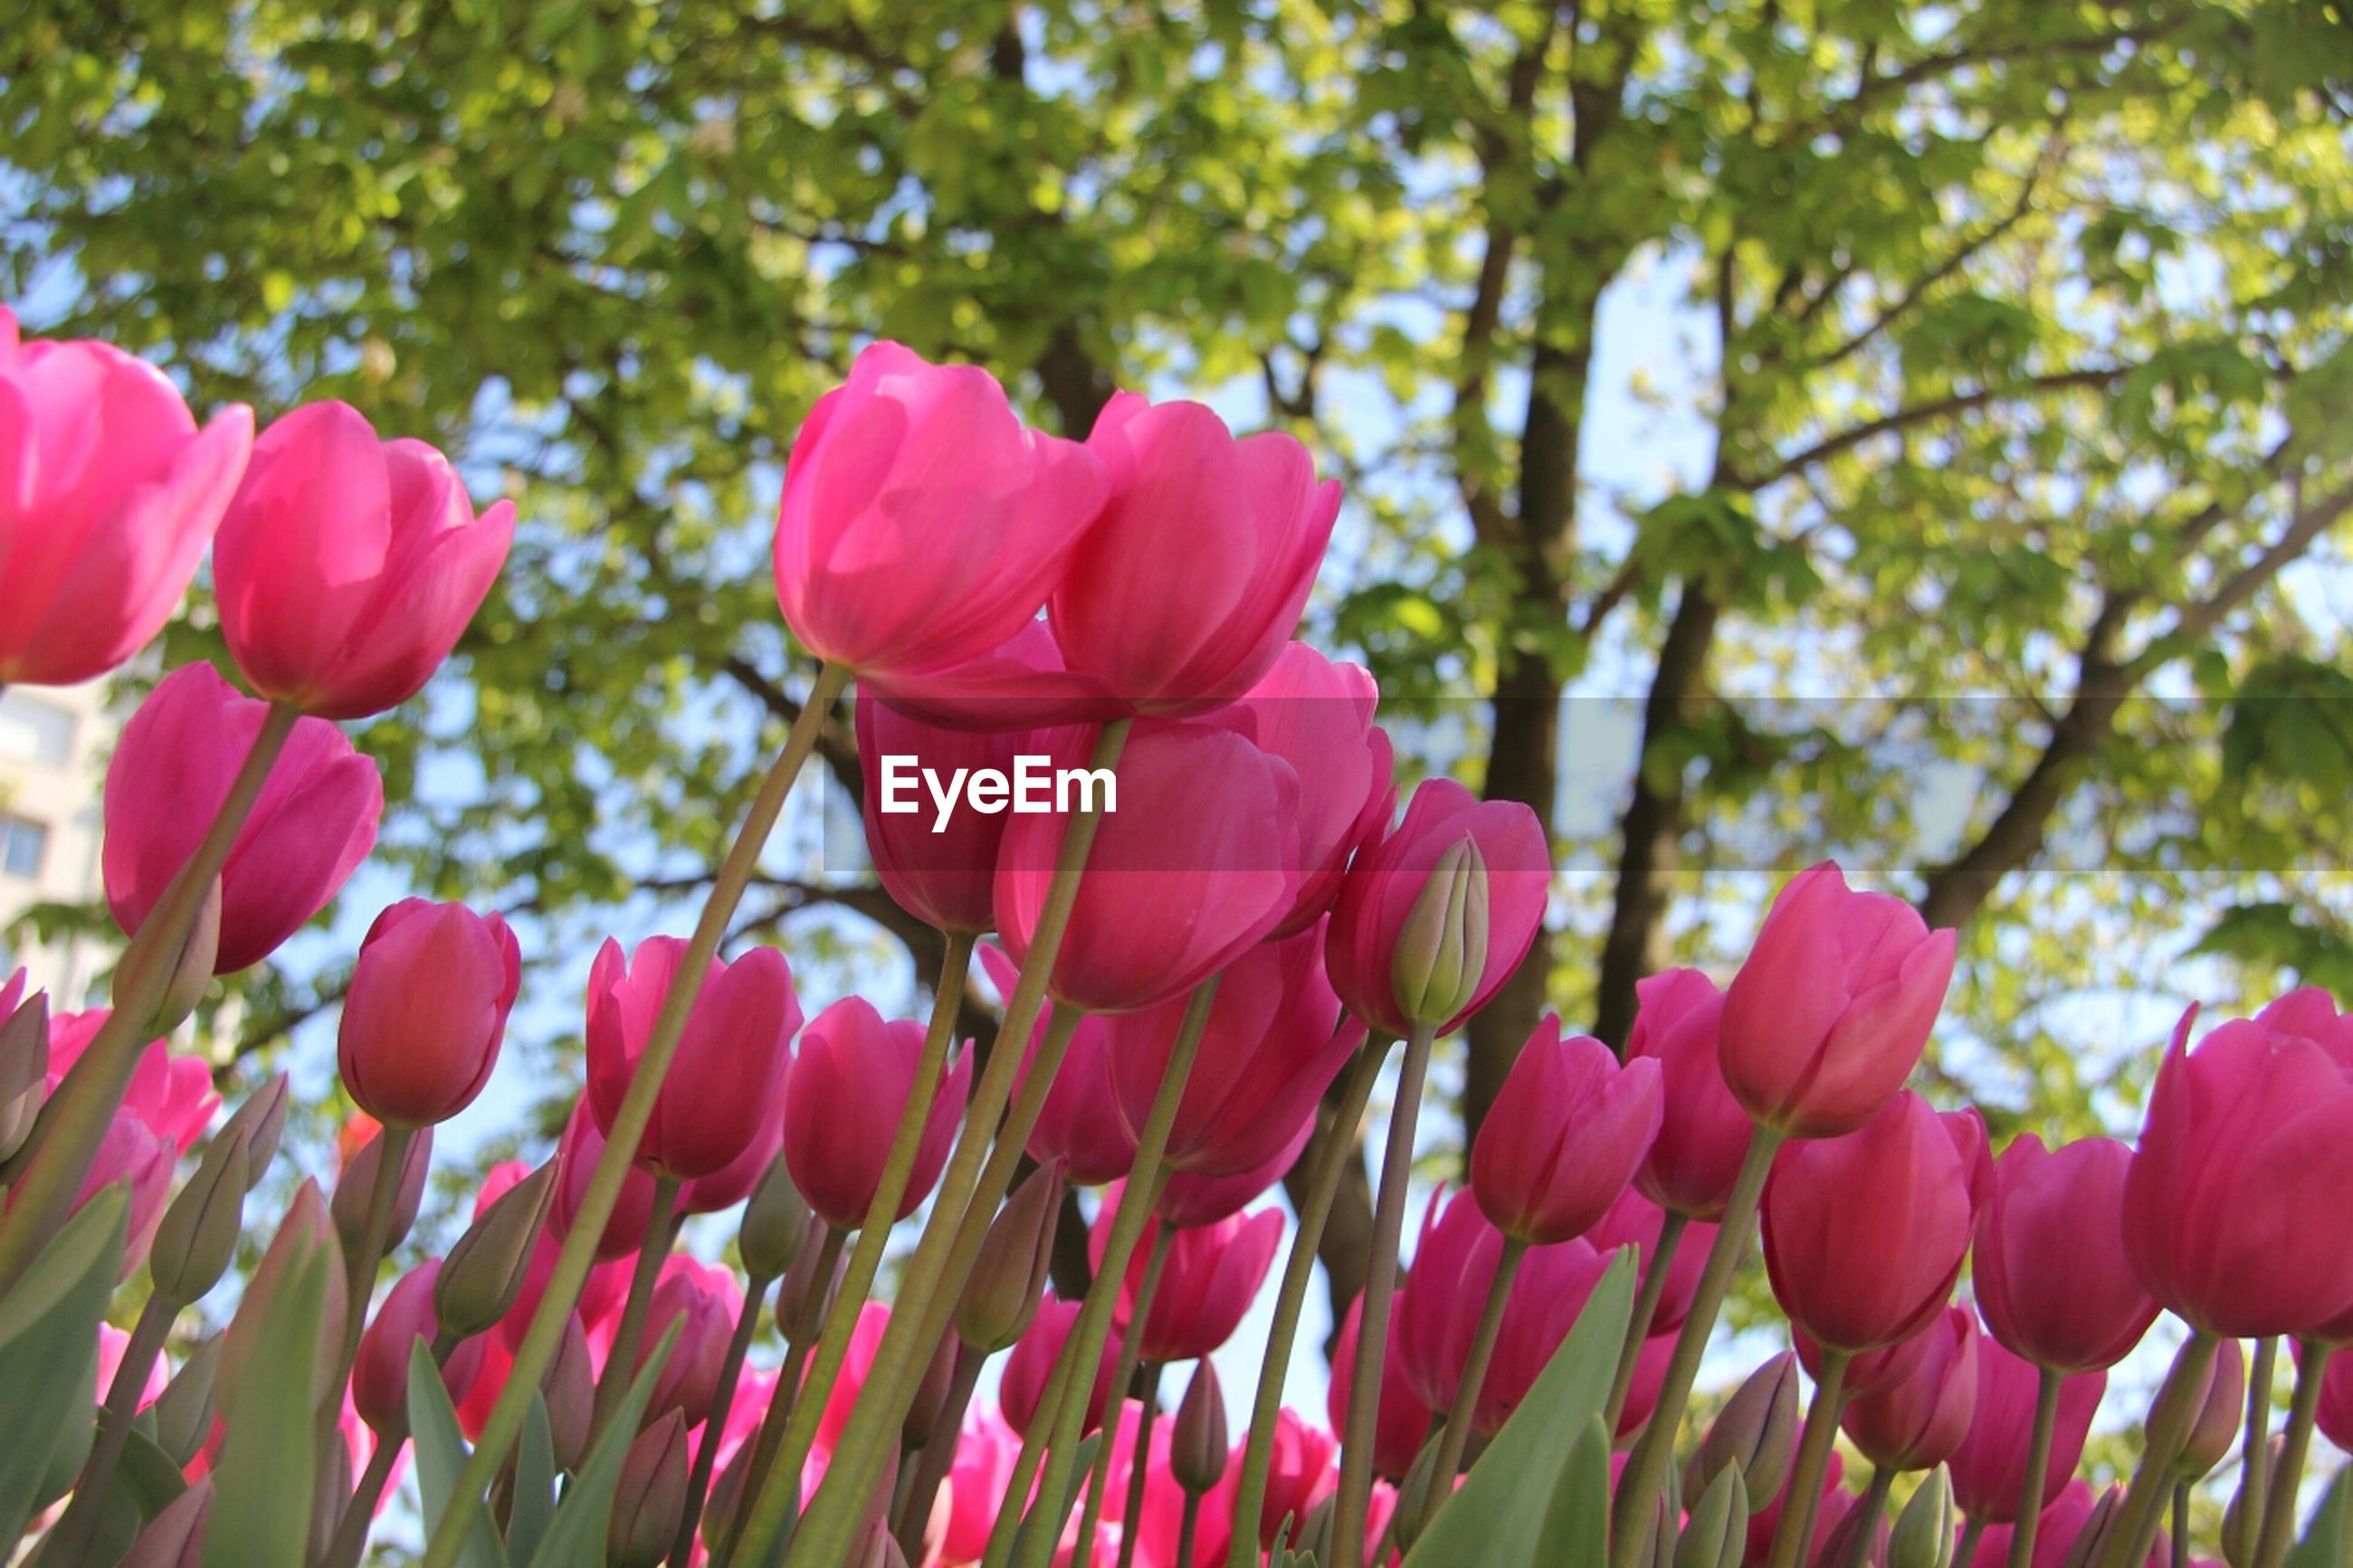 flower, freshness, growth, fragility, petal, pink color, beauty in nature, focus on foreground, nature, blooming, flower head, close-up, plant, stem, bud, red, day, pink, outdoors, blossom